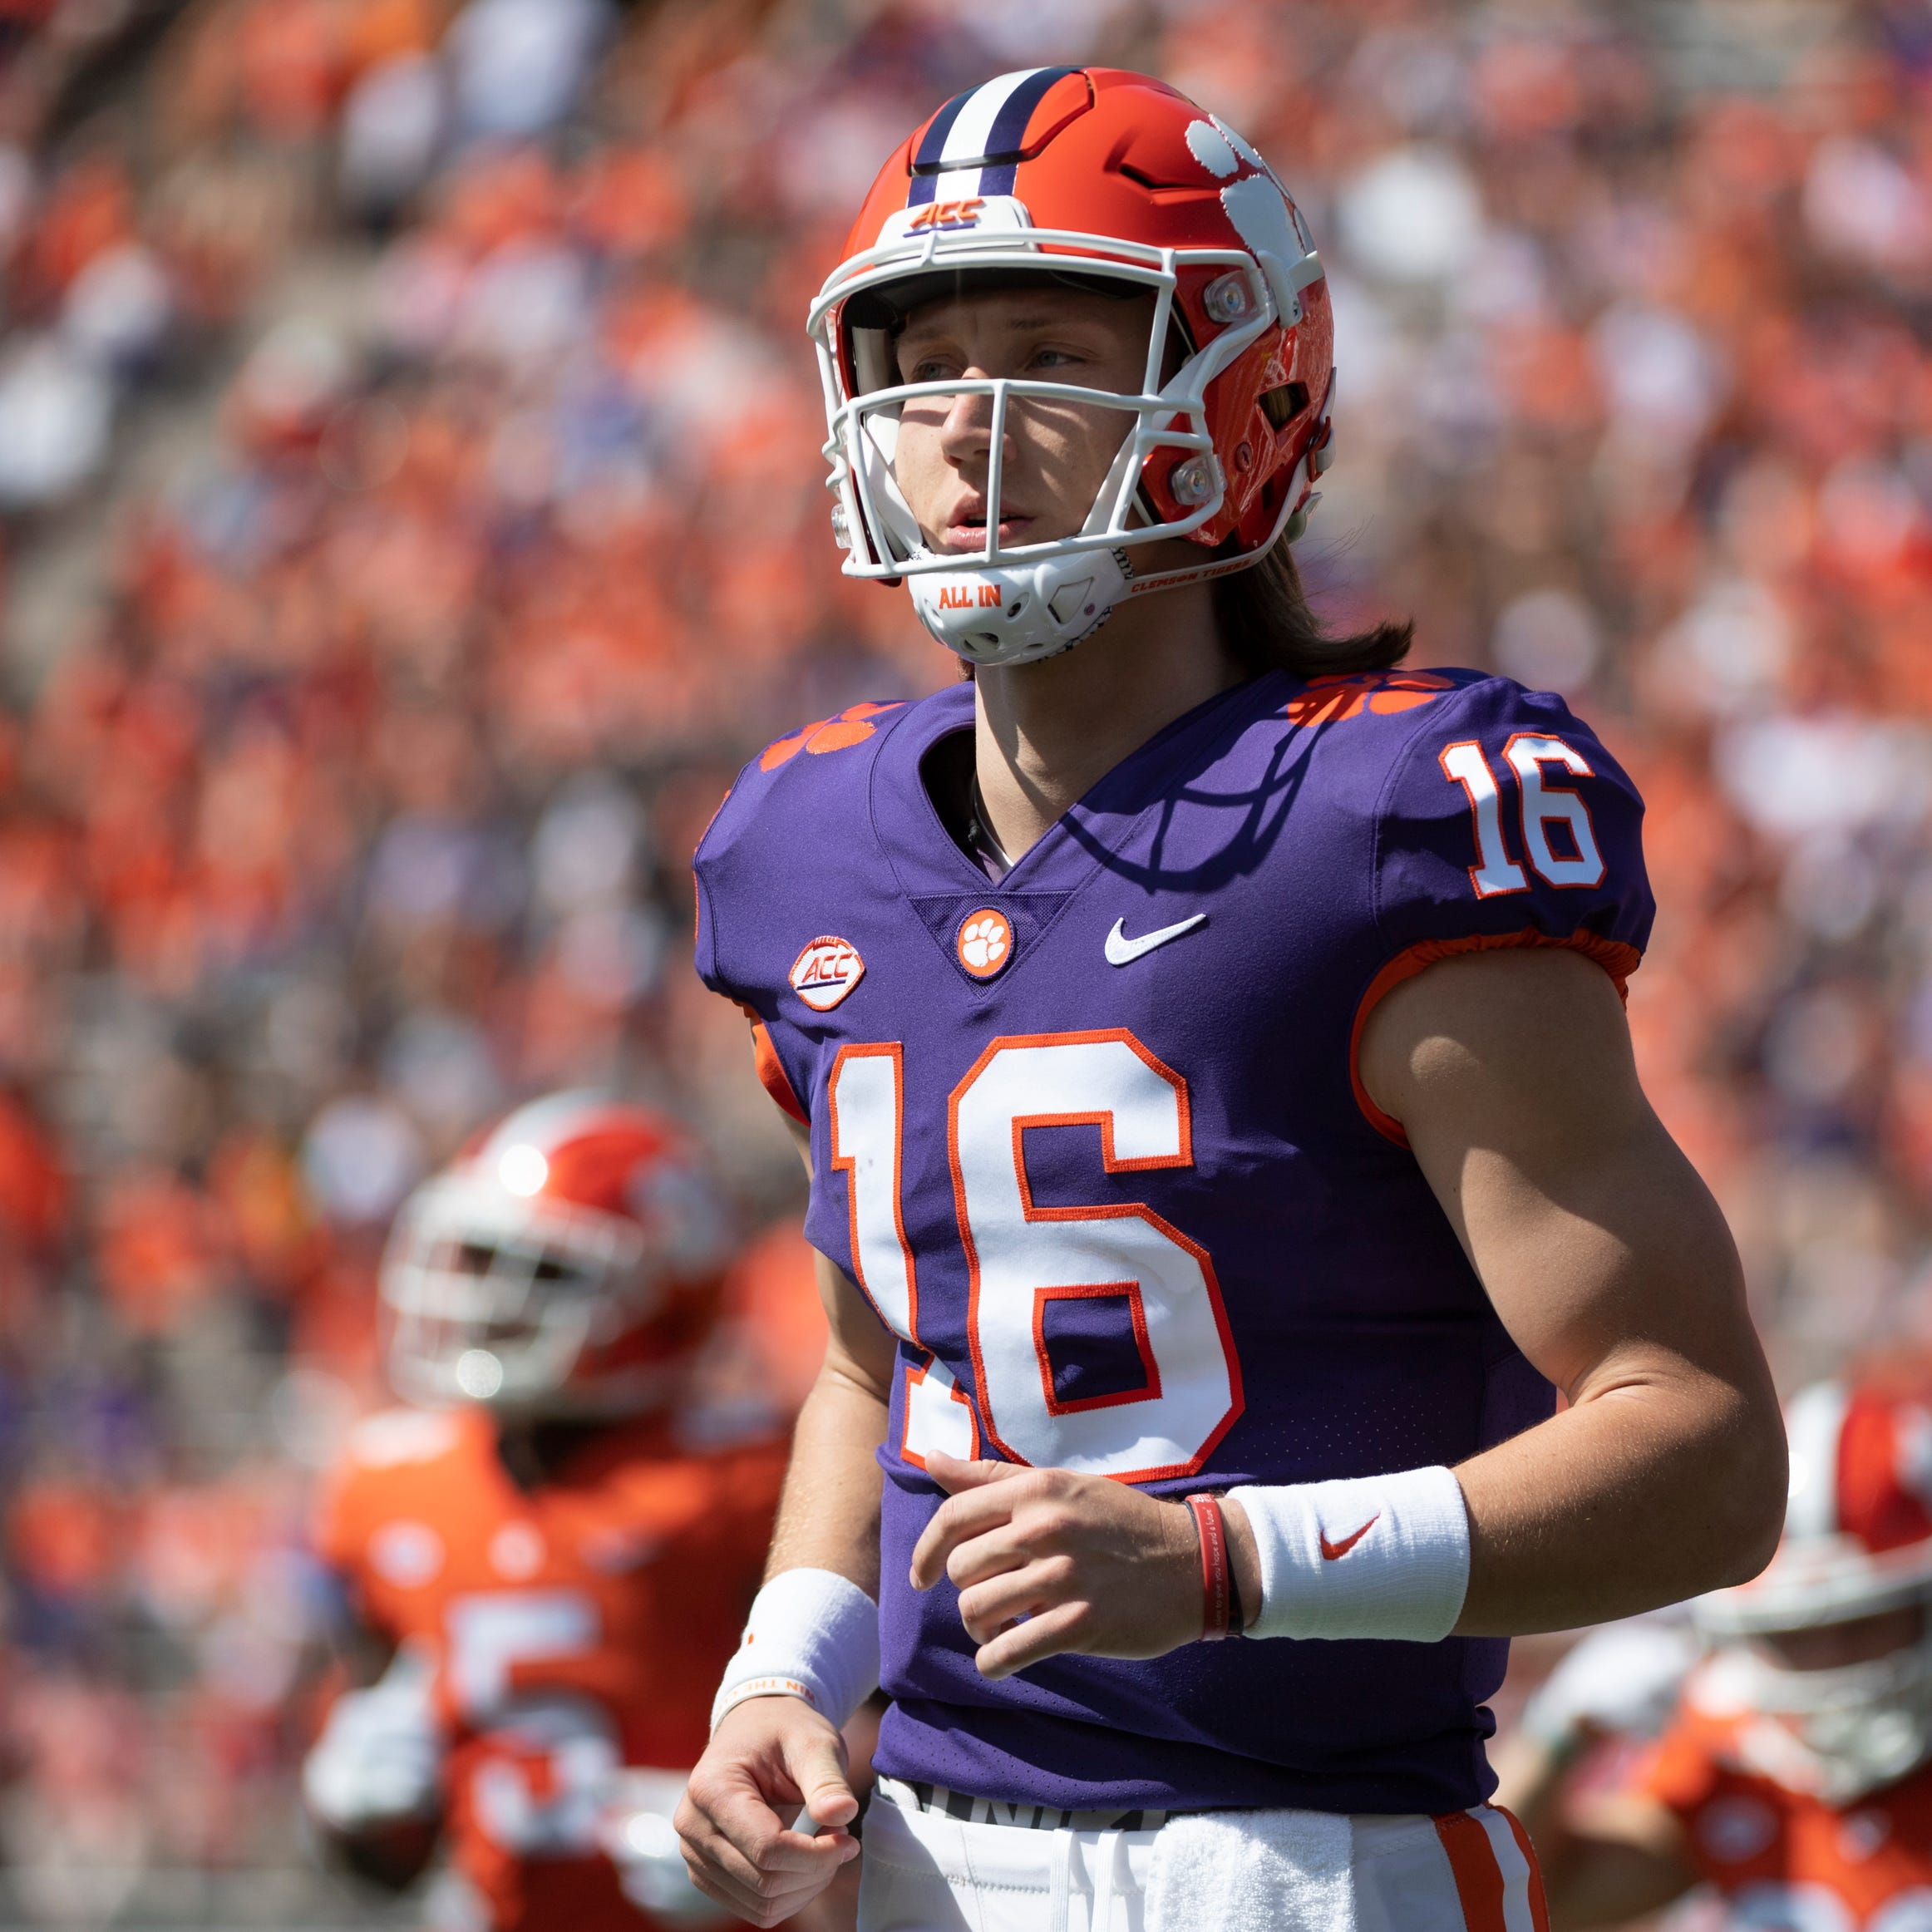 Clemson football Spring Game: QB Trevor Lawrence took 'step forward' this spring